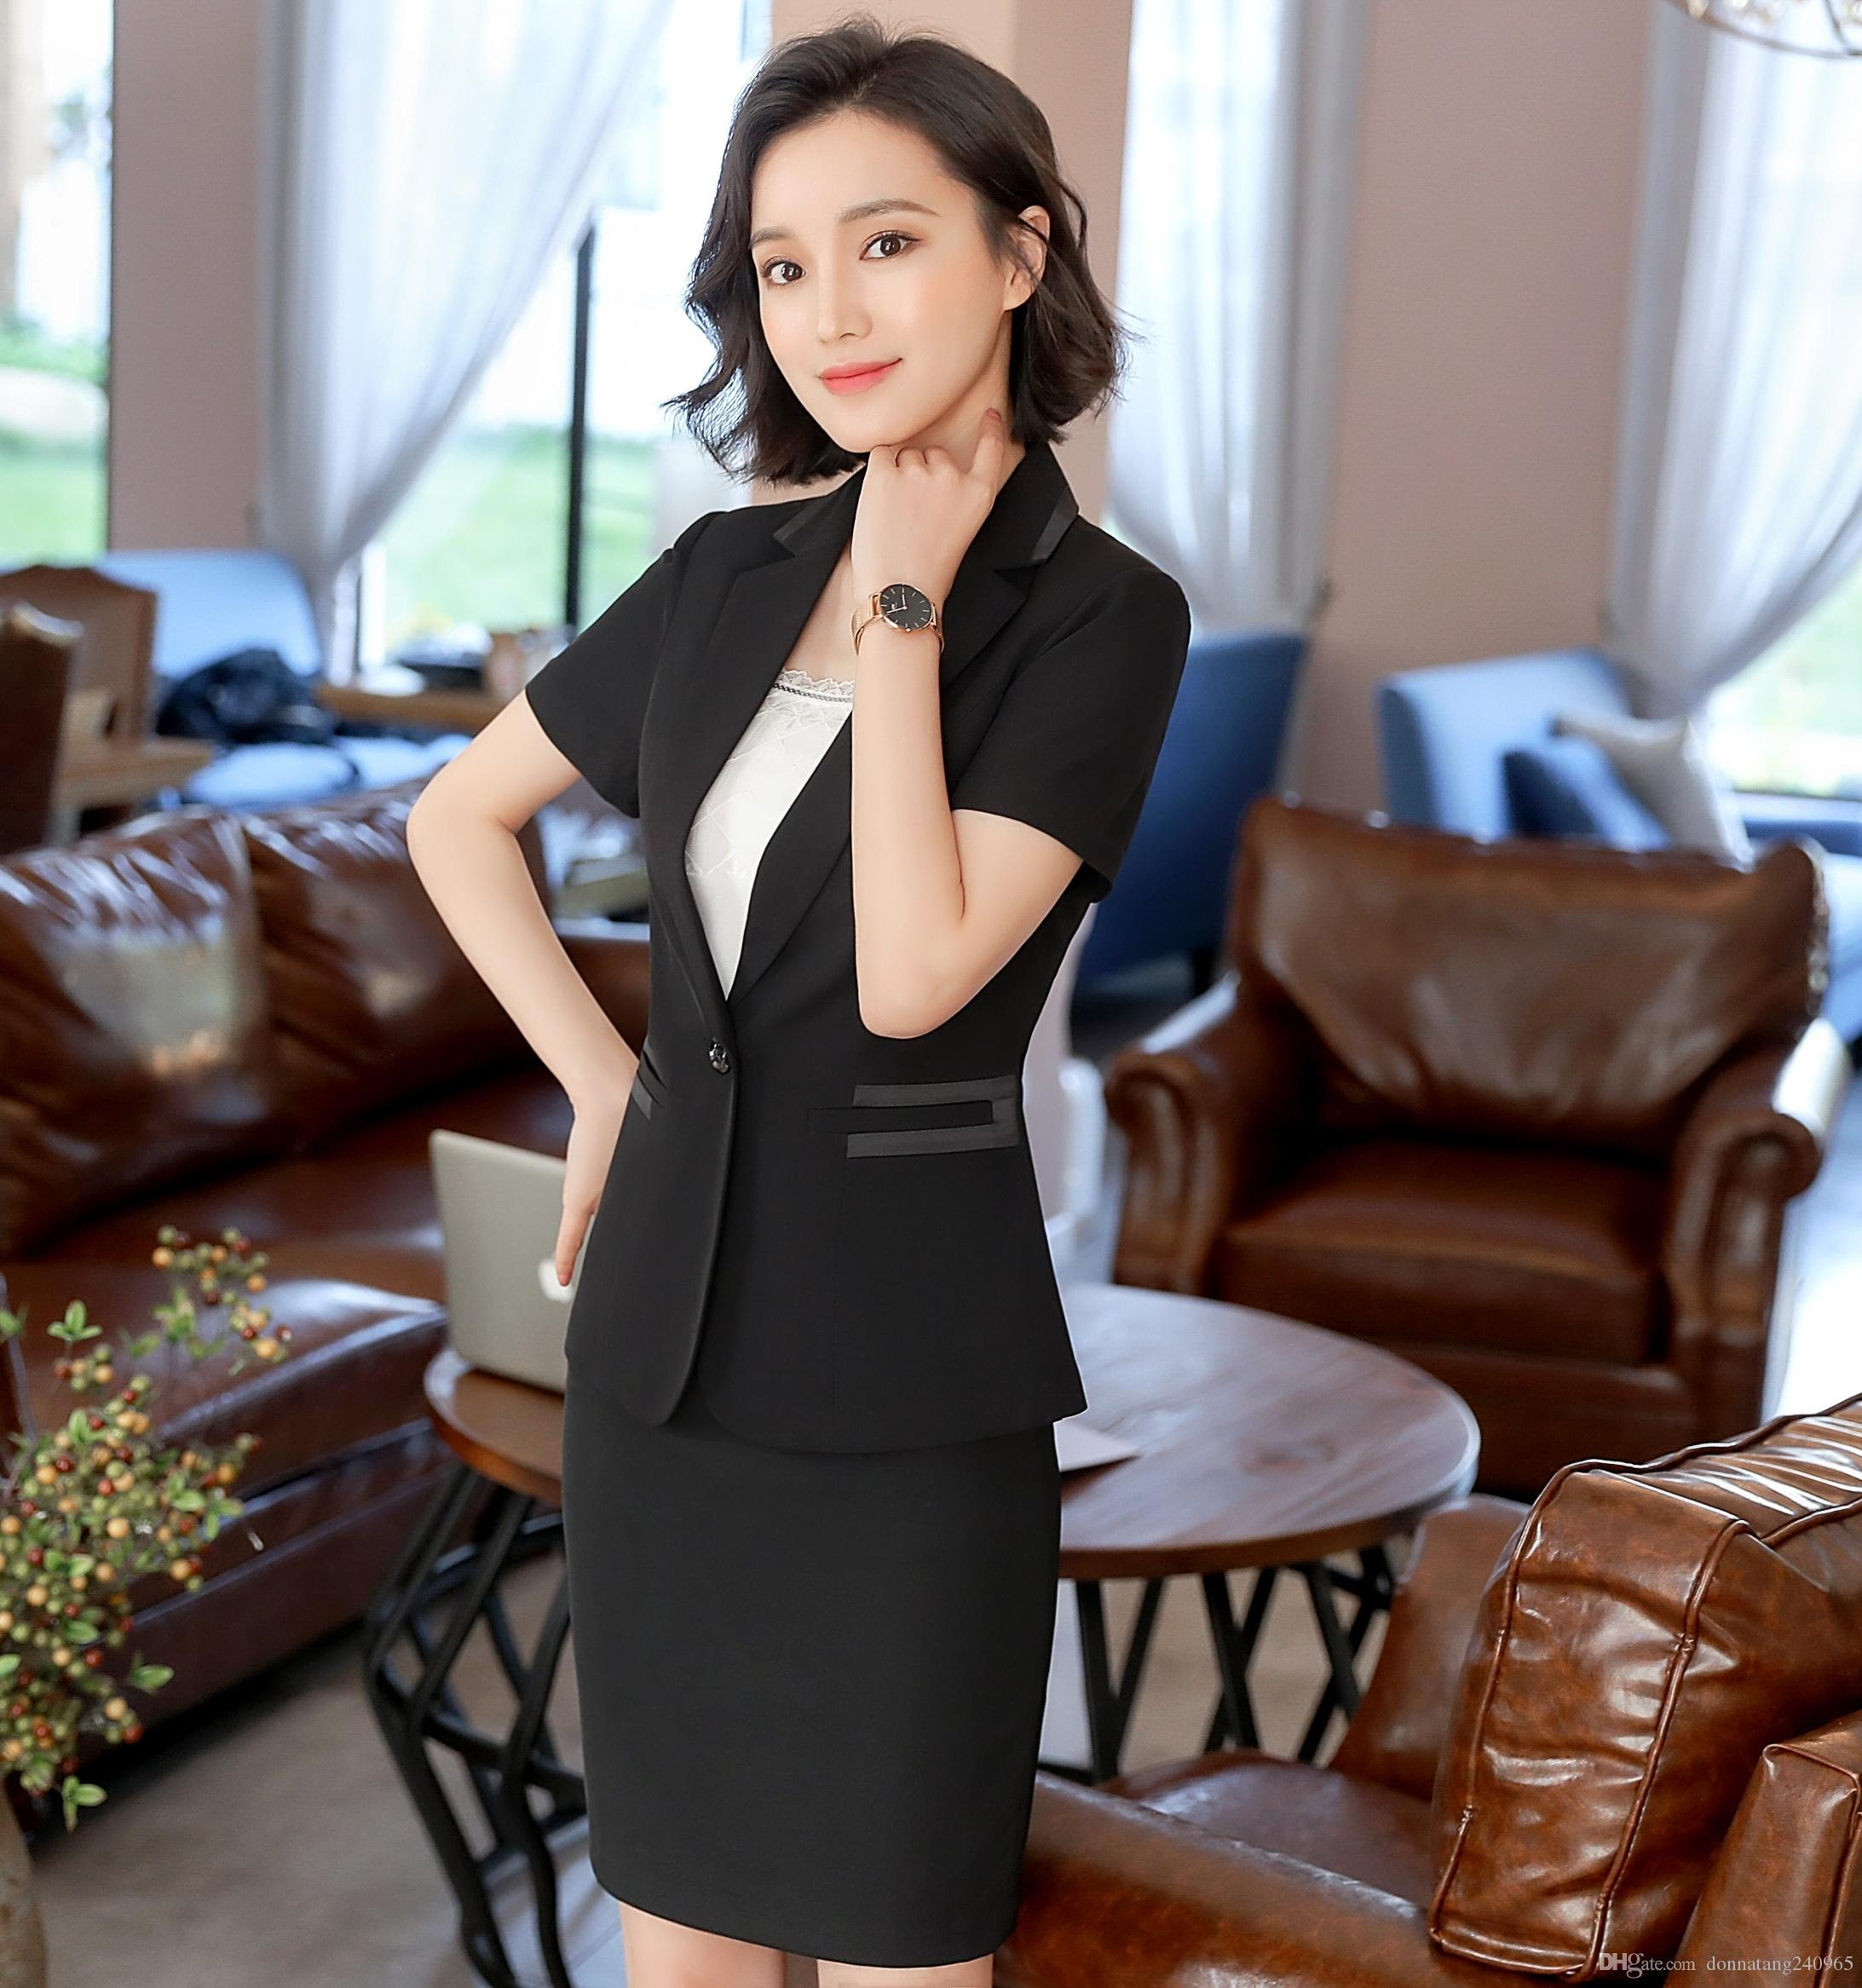 bc7b9a9cf43 2019 Pant Suits Summer Wear Short Sleeve Formal Uniform Style Office Skirt Suit  Women Work Blazer Jacket With Trousers Or Skirt From Donnatang240965